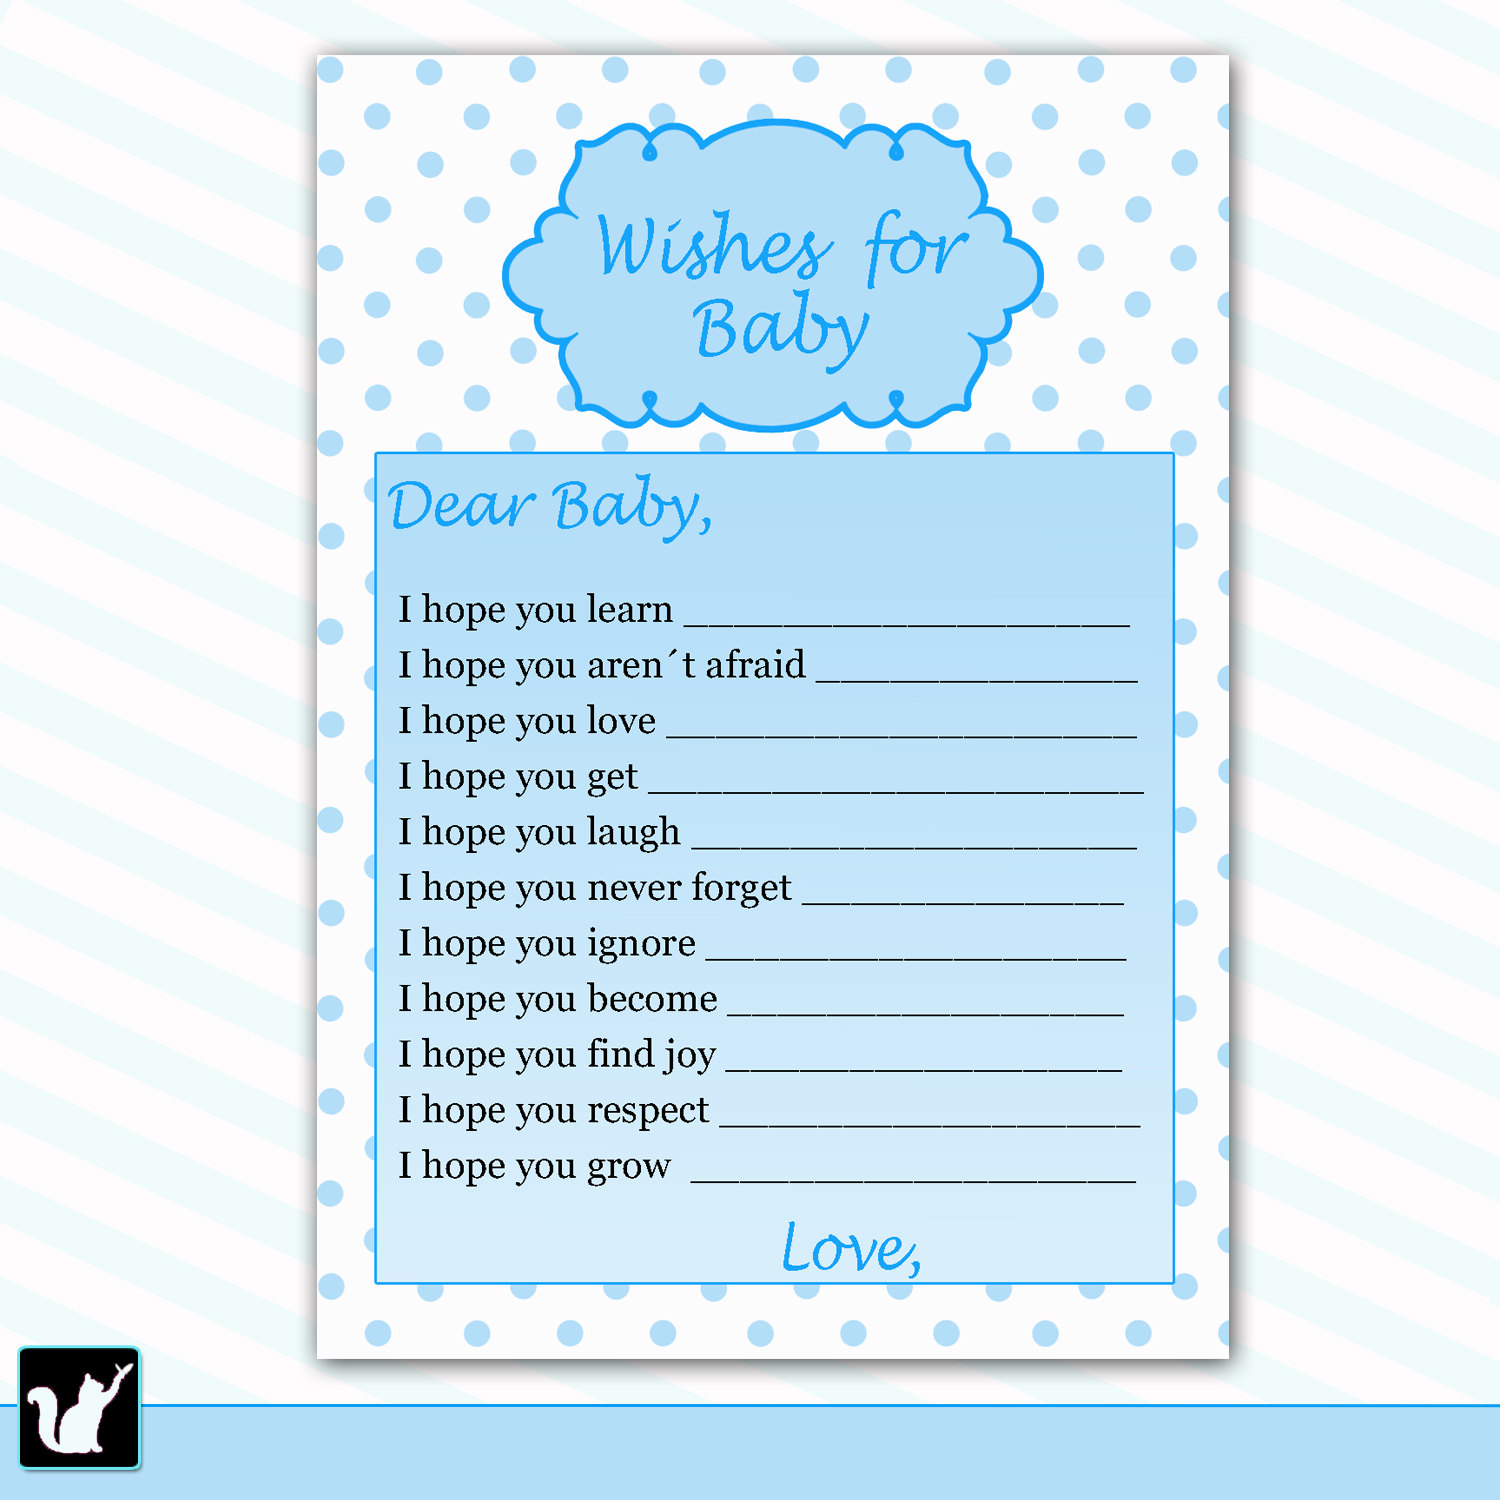 6 best images of printable wishes for baby boy printable for Wishes for baby printable template